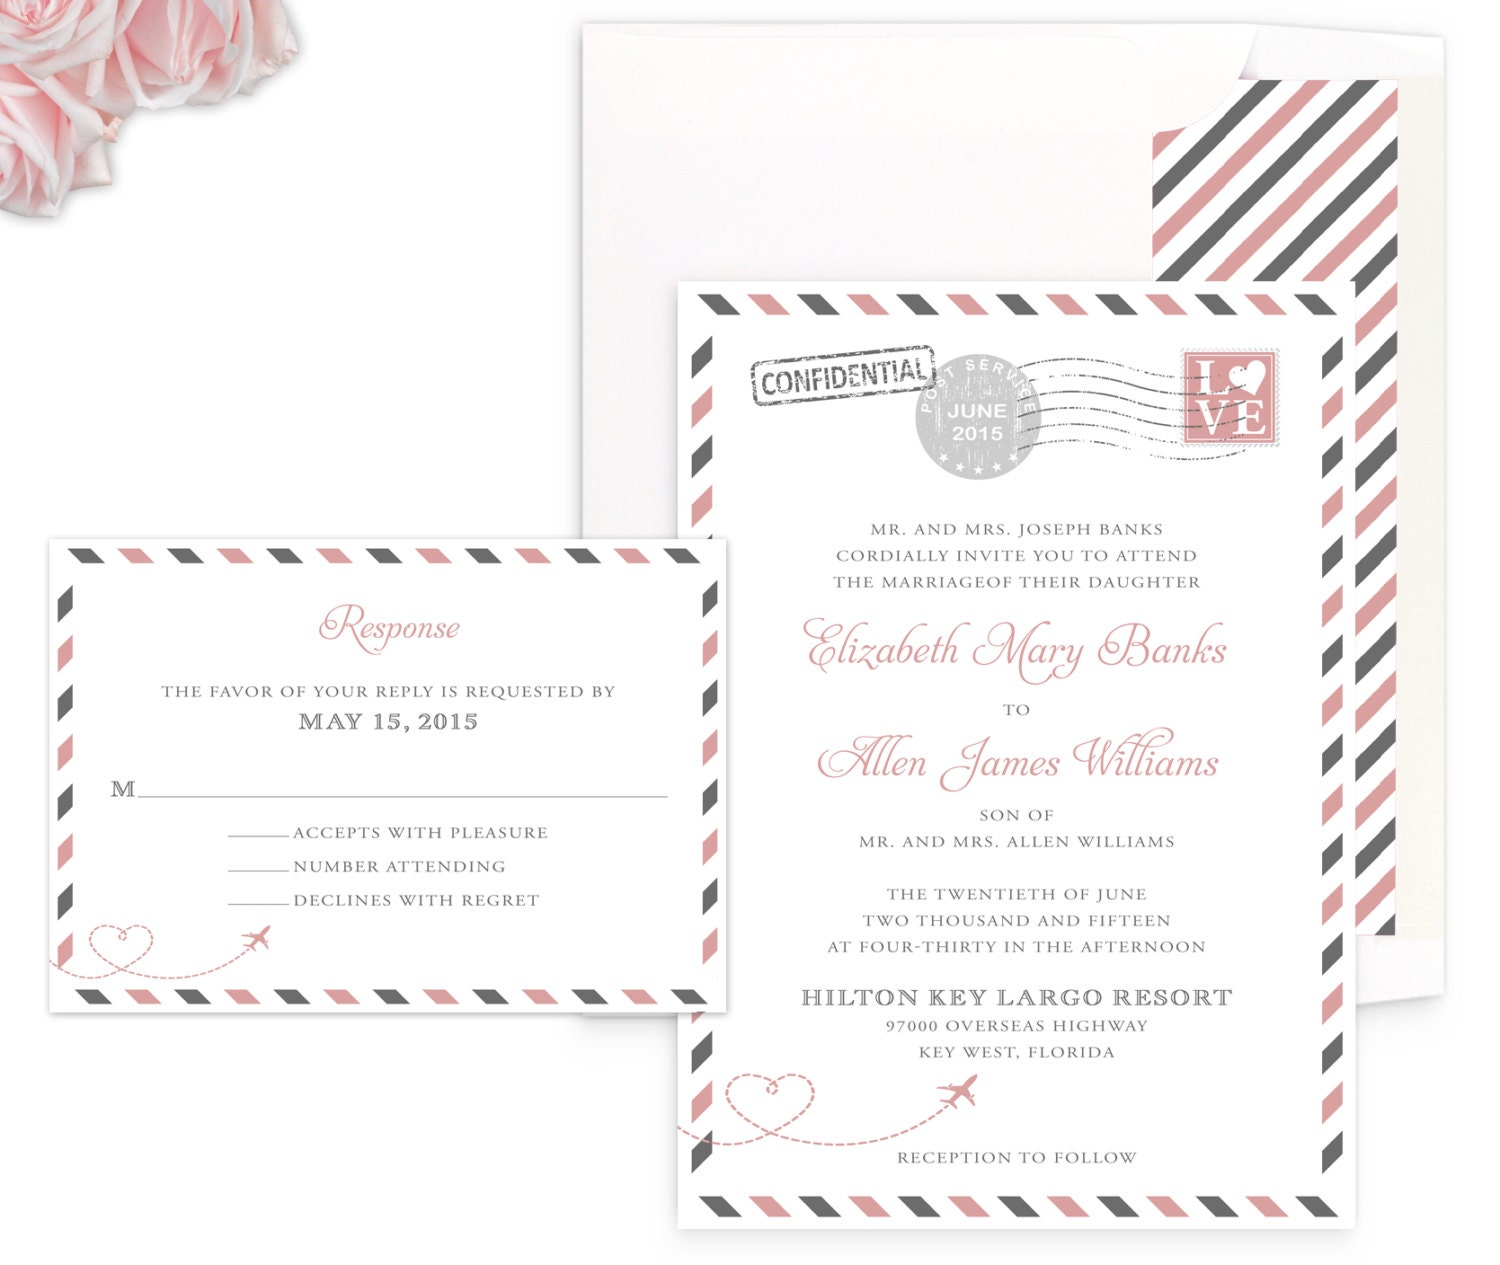 Vintage travel wedding invitation personalized travel zoom monicamarmolfo Gallery